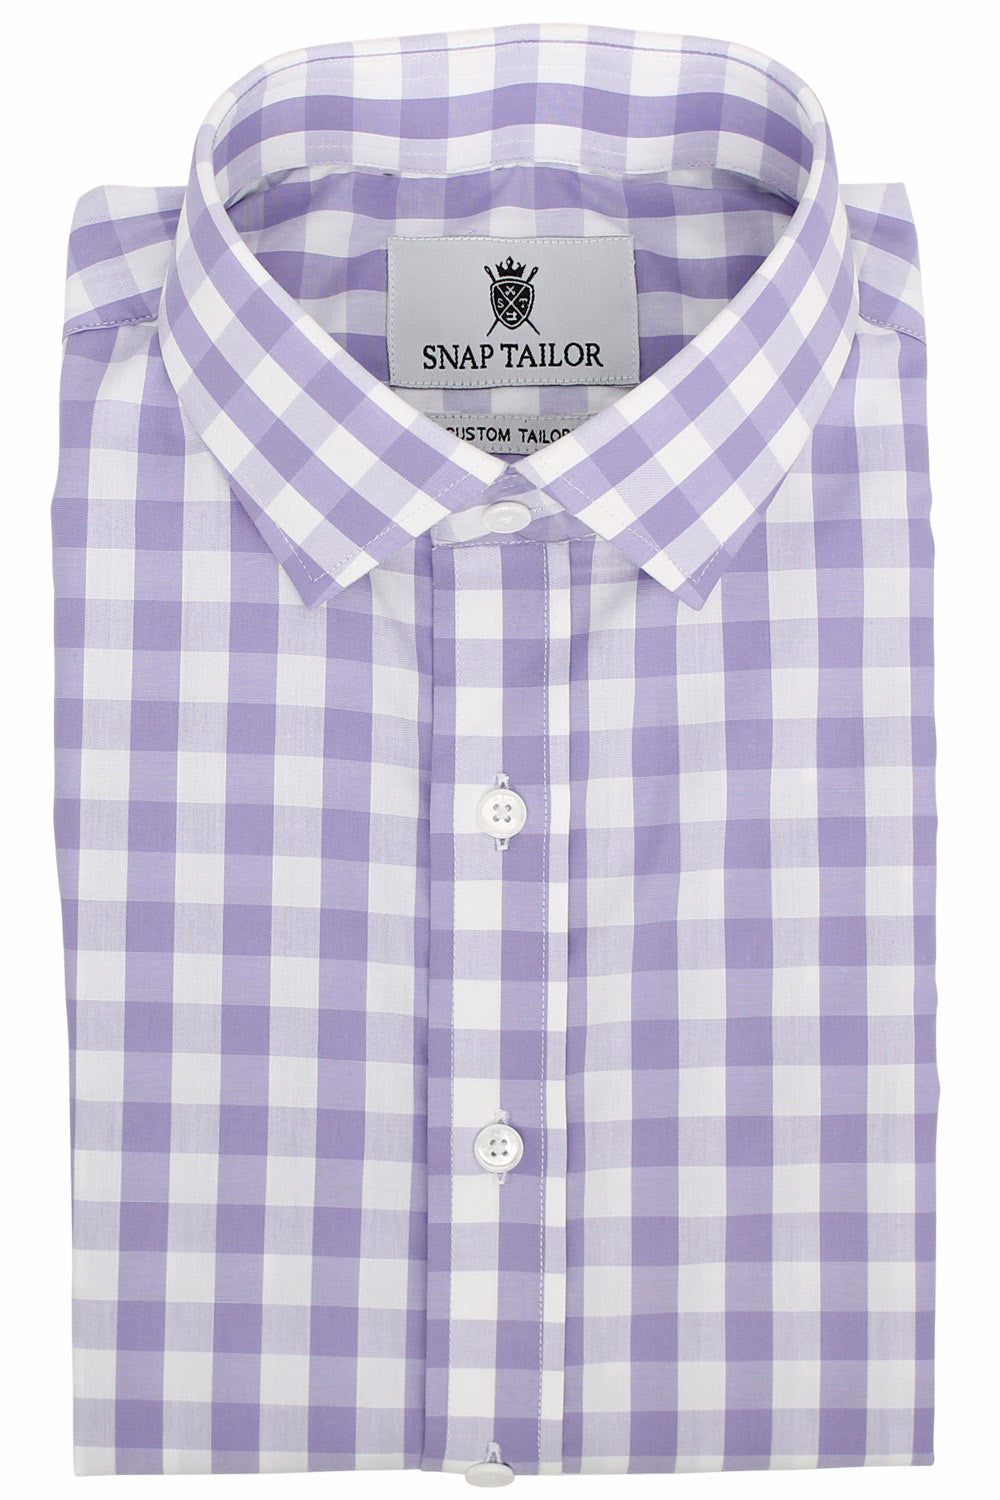 Photo of the Gingham Casual Shirt in Lavender